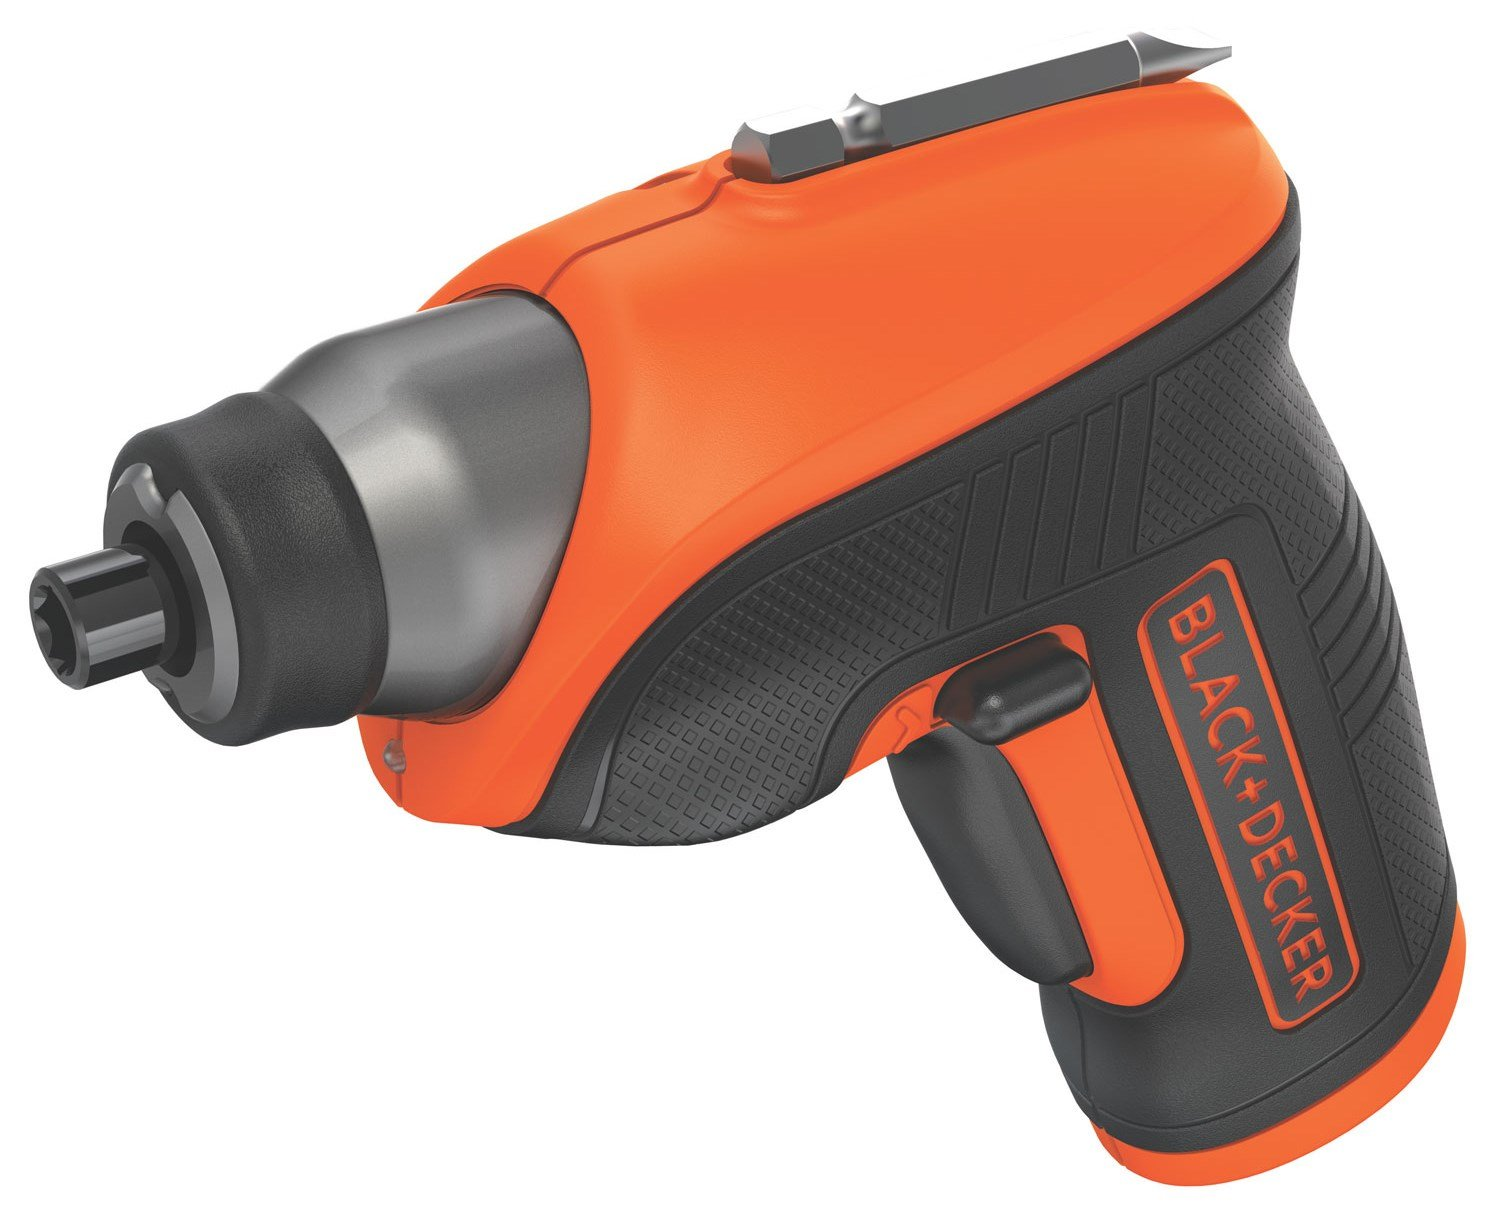 Black & Decker Power Tools Bdcs30c 4 Volt Max Lithium Cordless Rechargeable Screwdriver